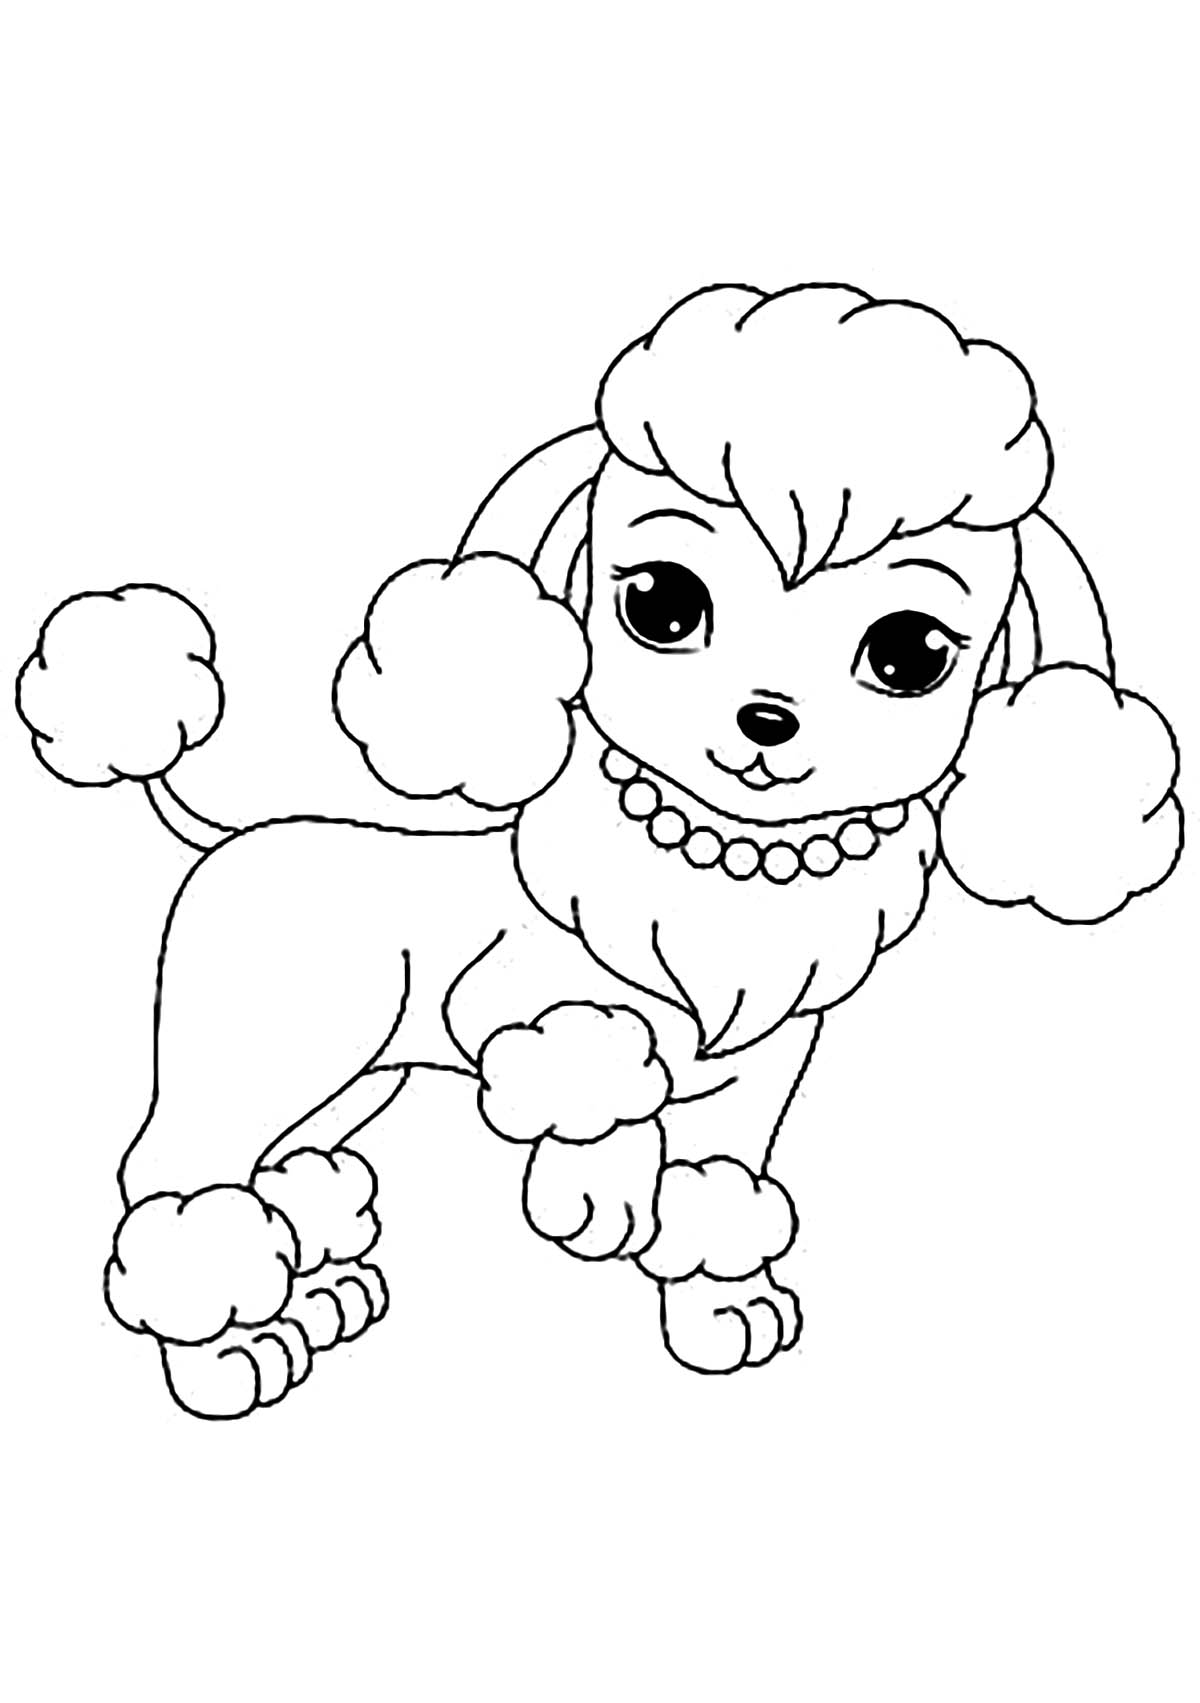 Dog Free To Color For Children Cute Female Dog